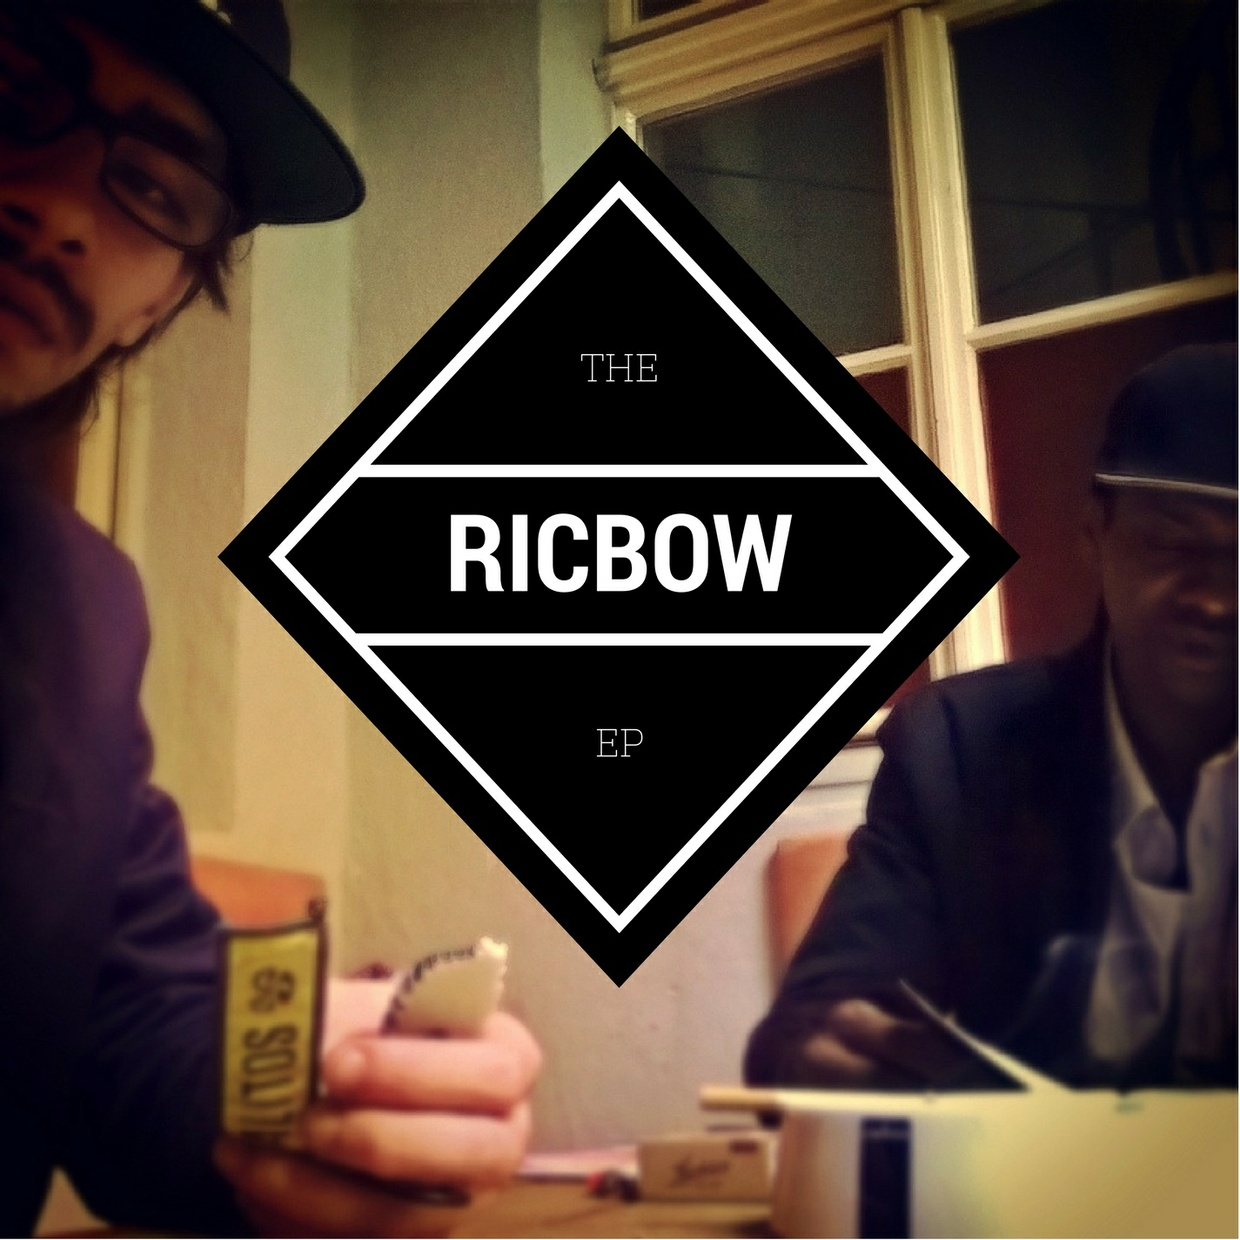 RICBOW - EP by (Holandez & Holly)